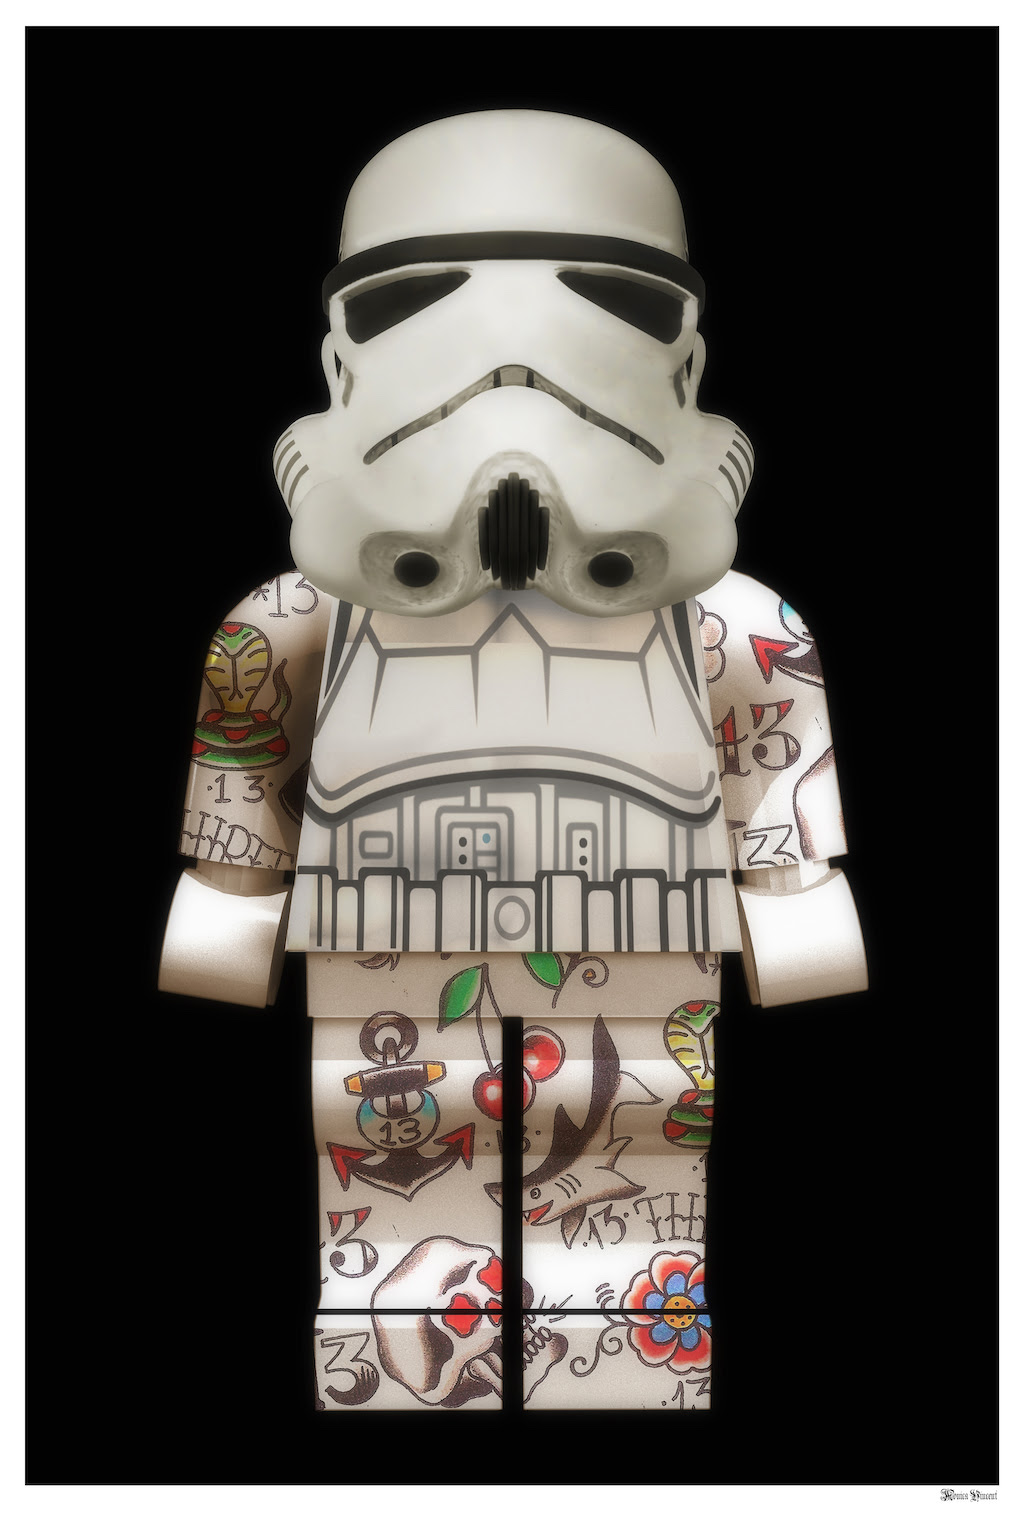 Lego Storm Trooper (Black Background) - Small  by Monica Vincent